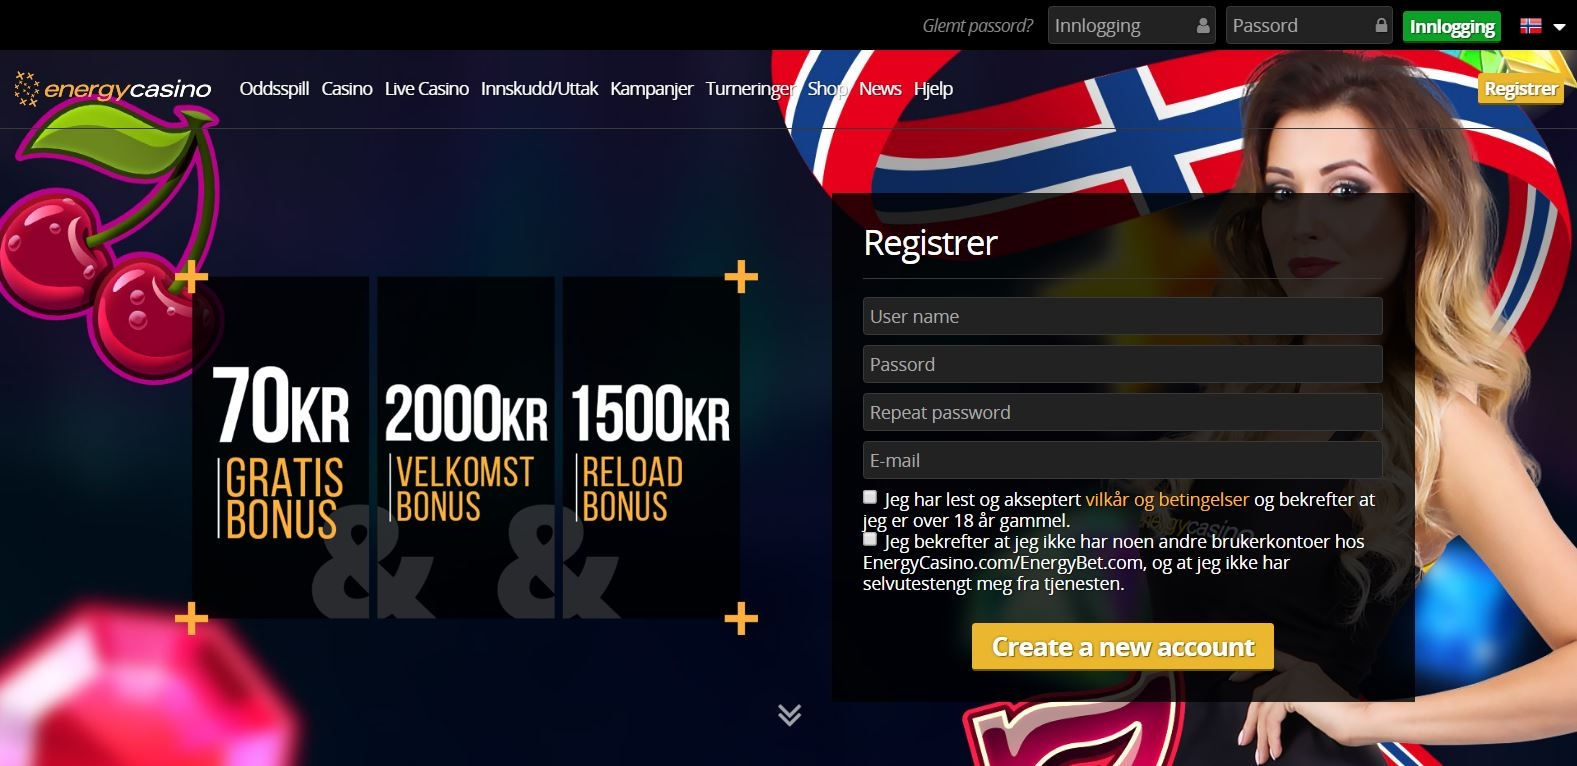 EUR 2780 No deposit casino bonus at Casino.com